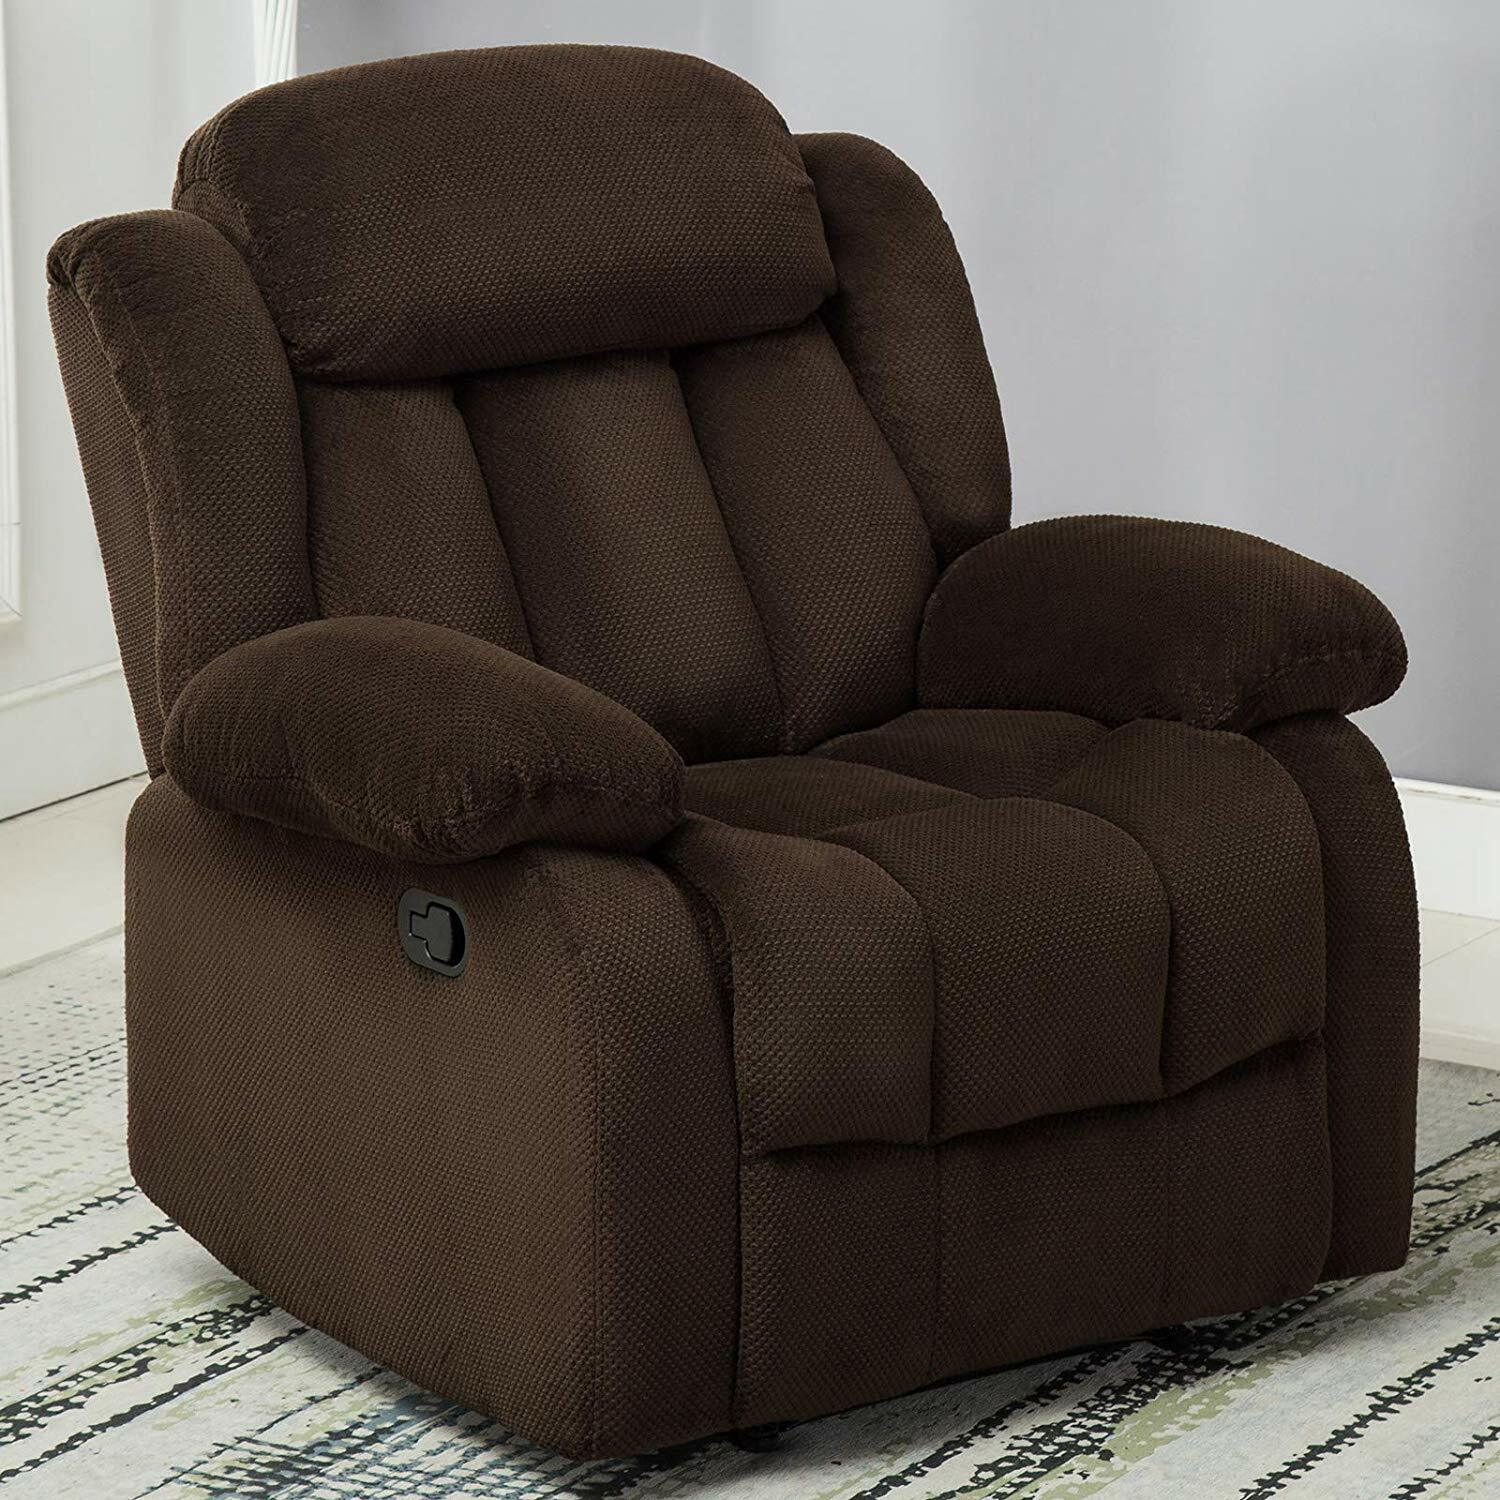 Manual Recliner Chair Living Room Lounge Oversized Chair Bro